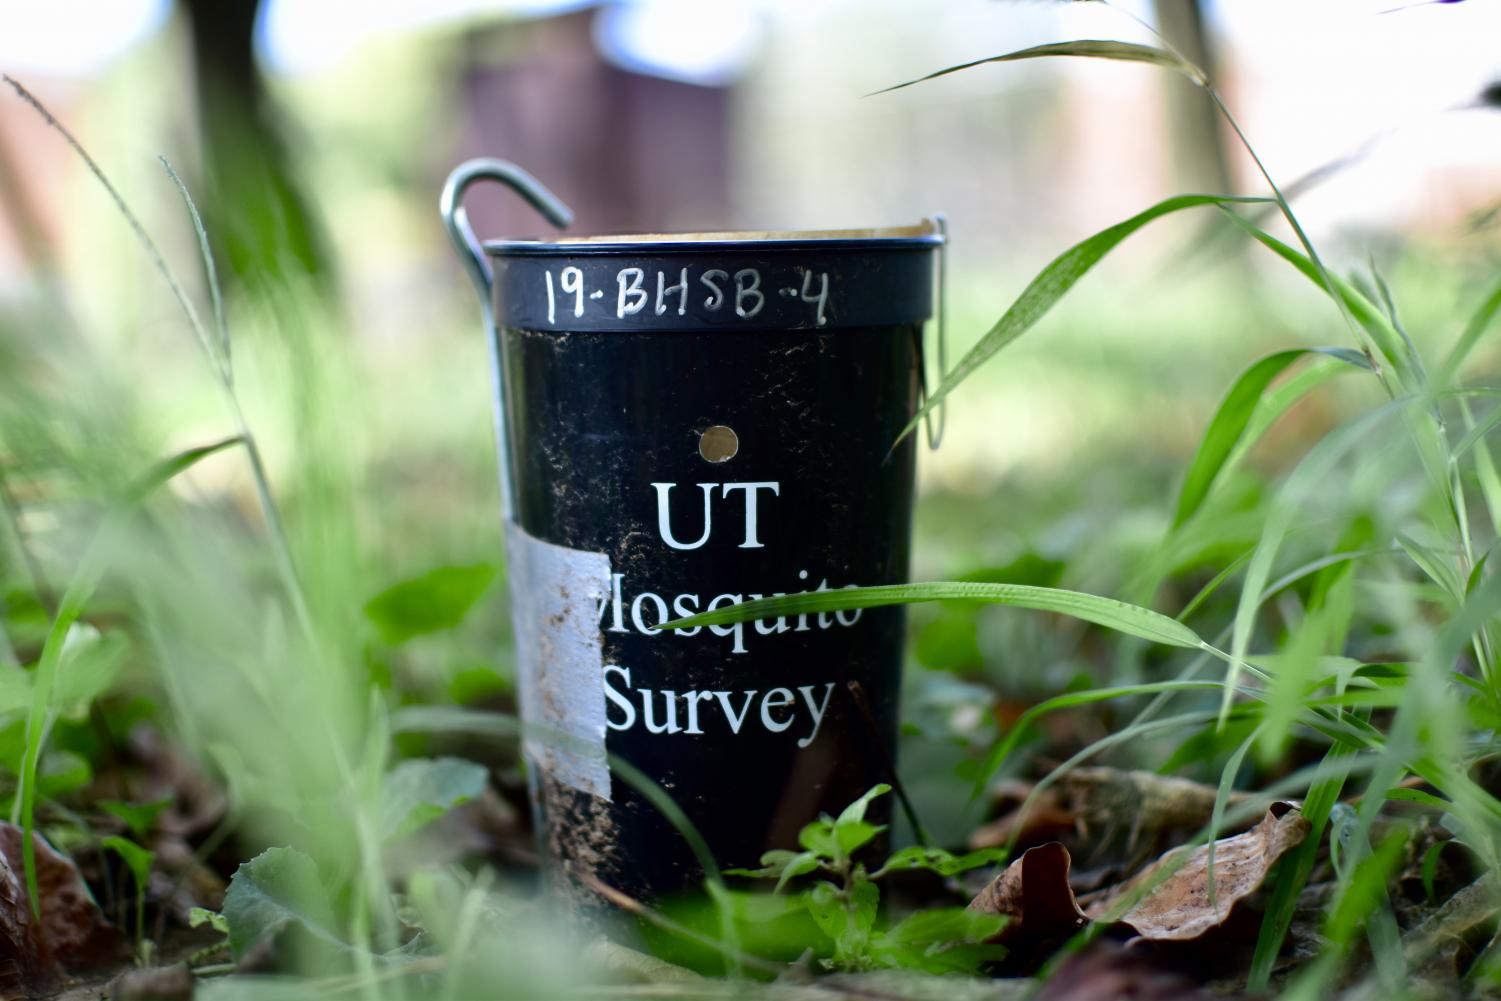 Cups like this one are located around campus, and Bearden students are getting hands-on experience in helping UT with its data collection.